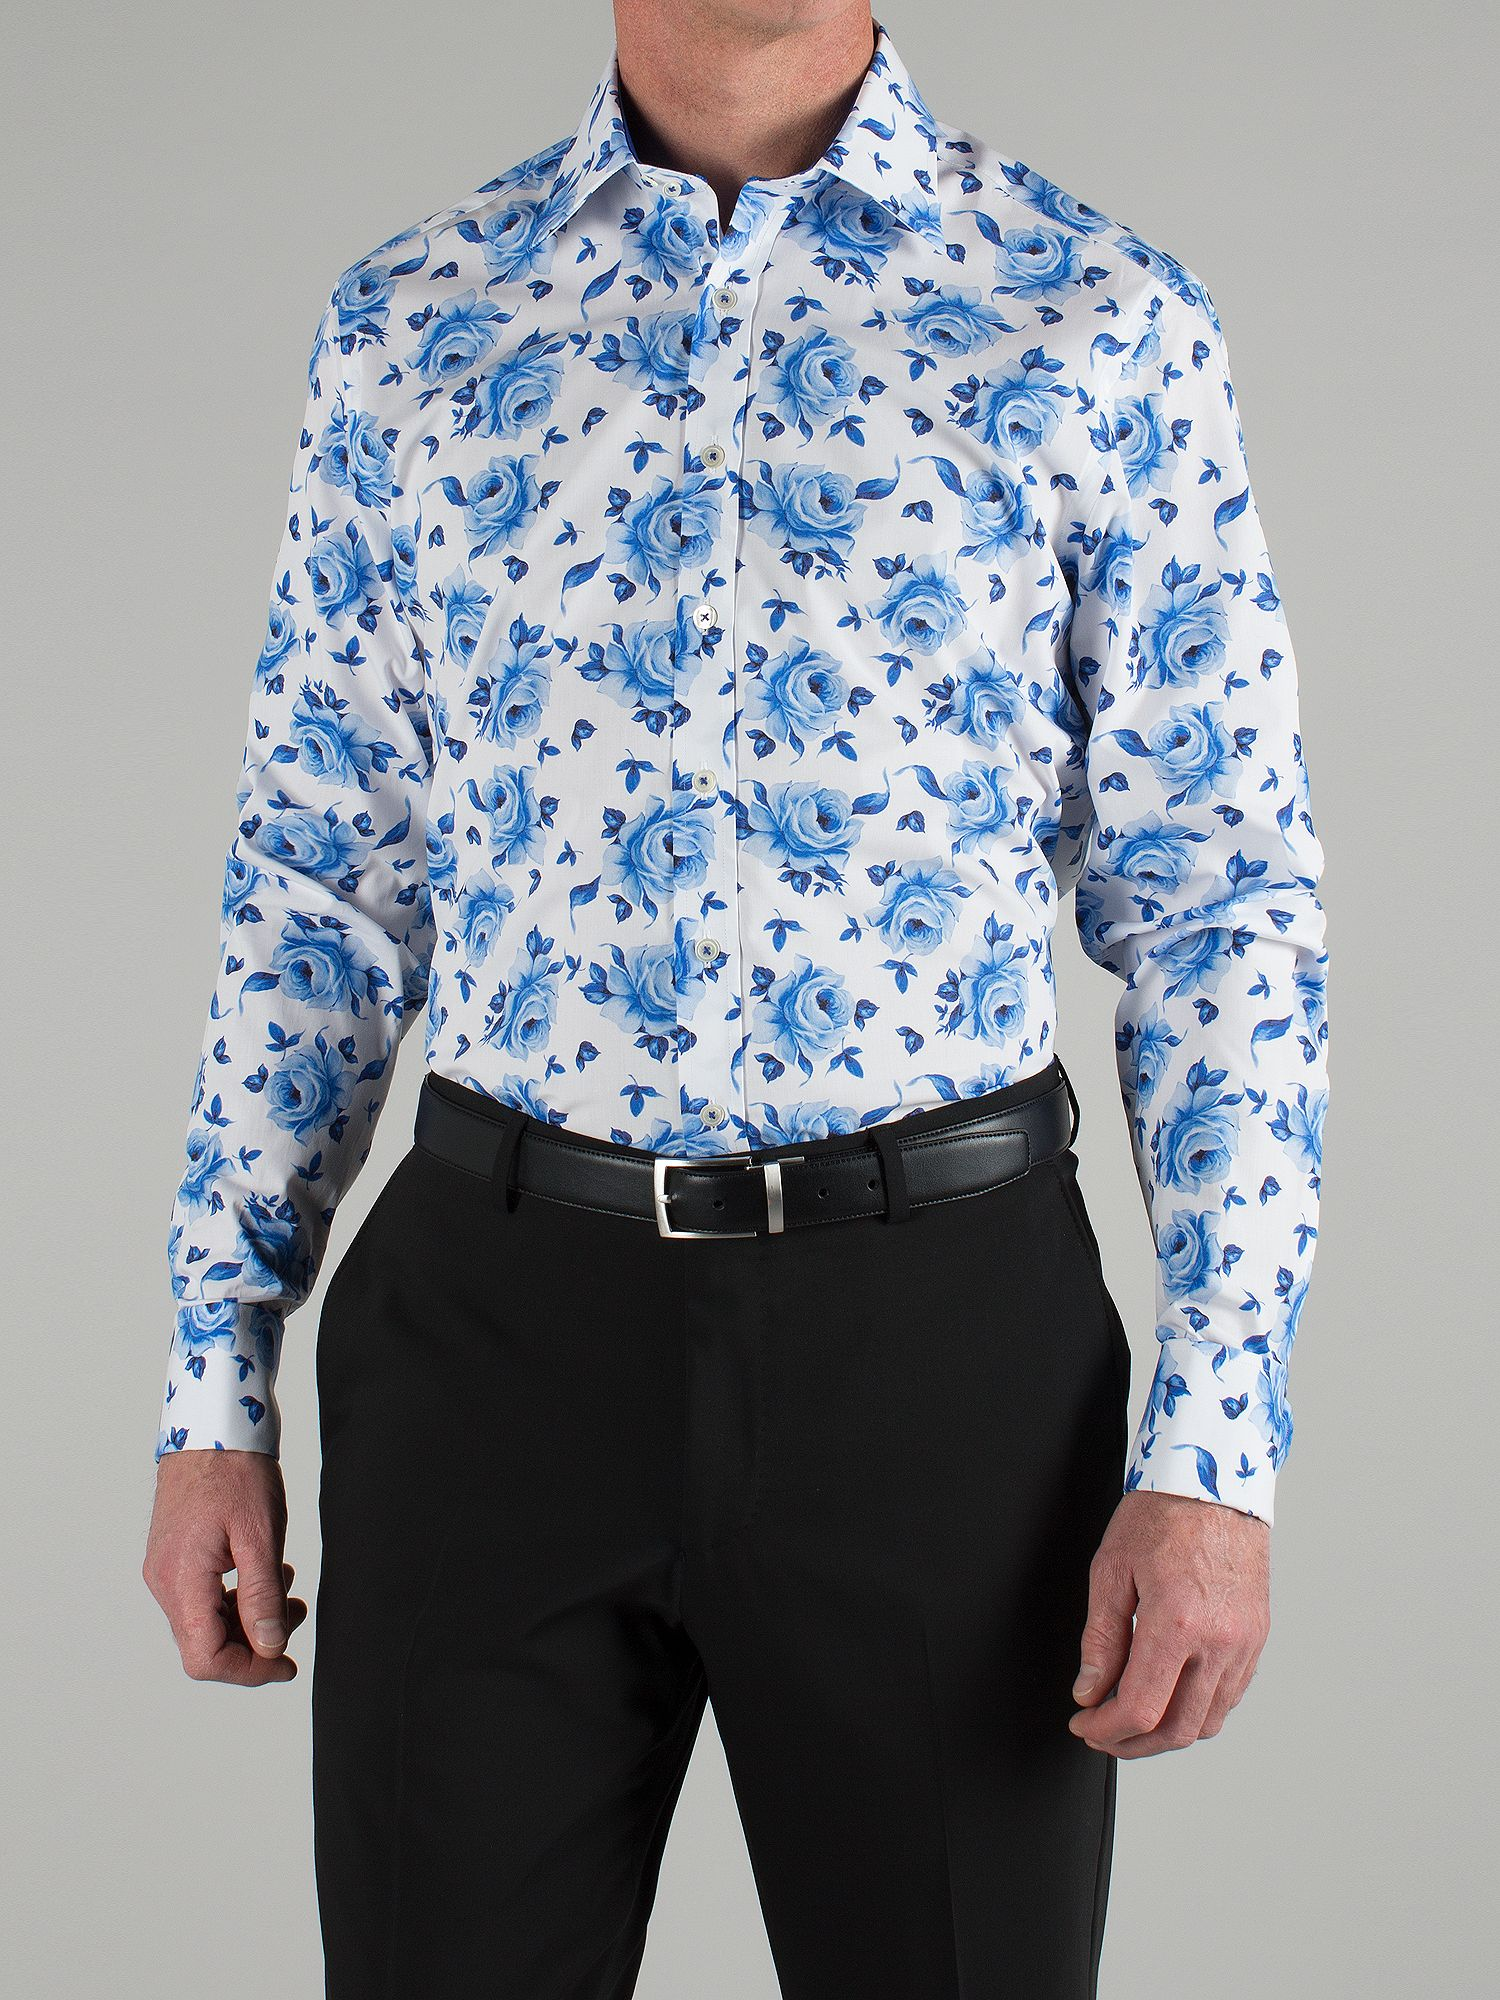 Blue large rose tailored shirt